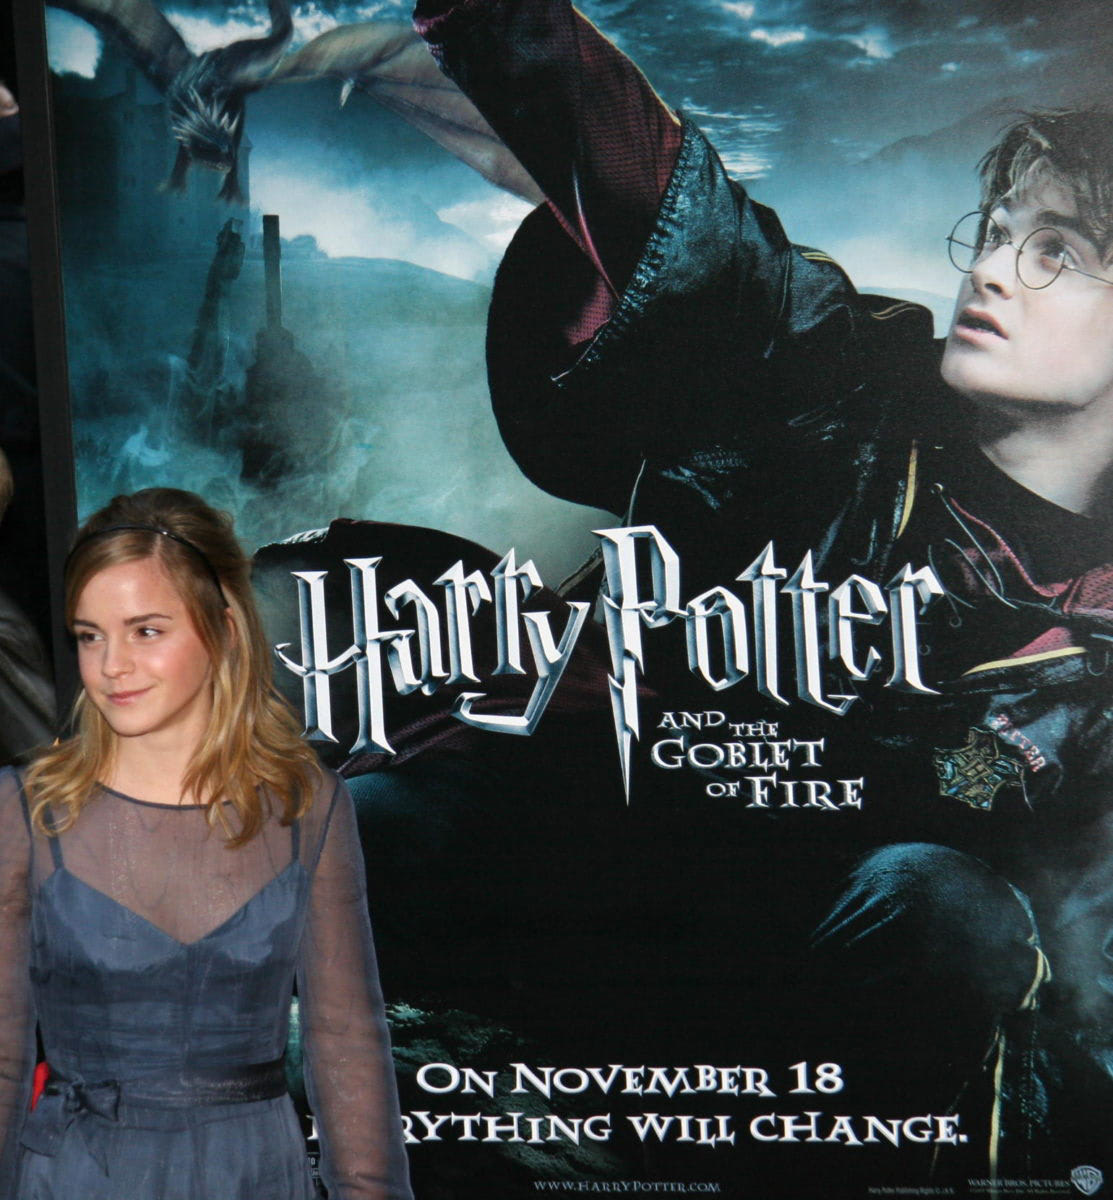 Emma Watson at the New York City 'Goblet of Fire' premiere